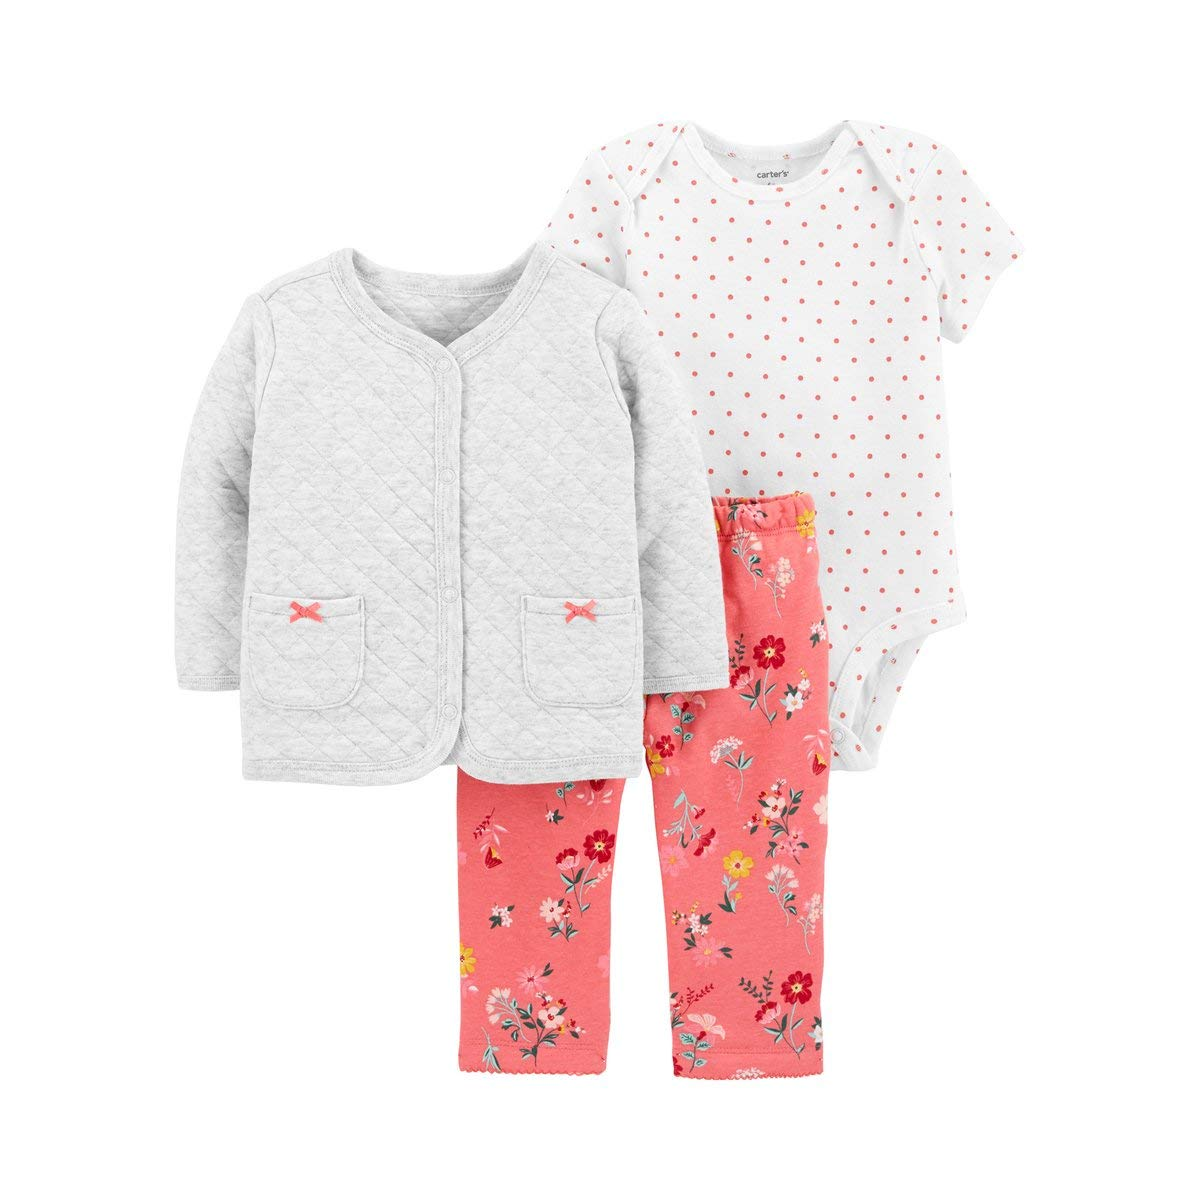 8dbb9c0e8 Amazon.com: Carter's Baby Girls' 3-Piece Little Jacket Set (Quilted/Pink  Floral, 18 Months): Clothing